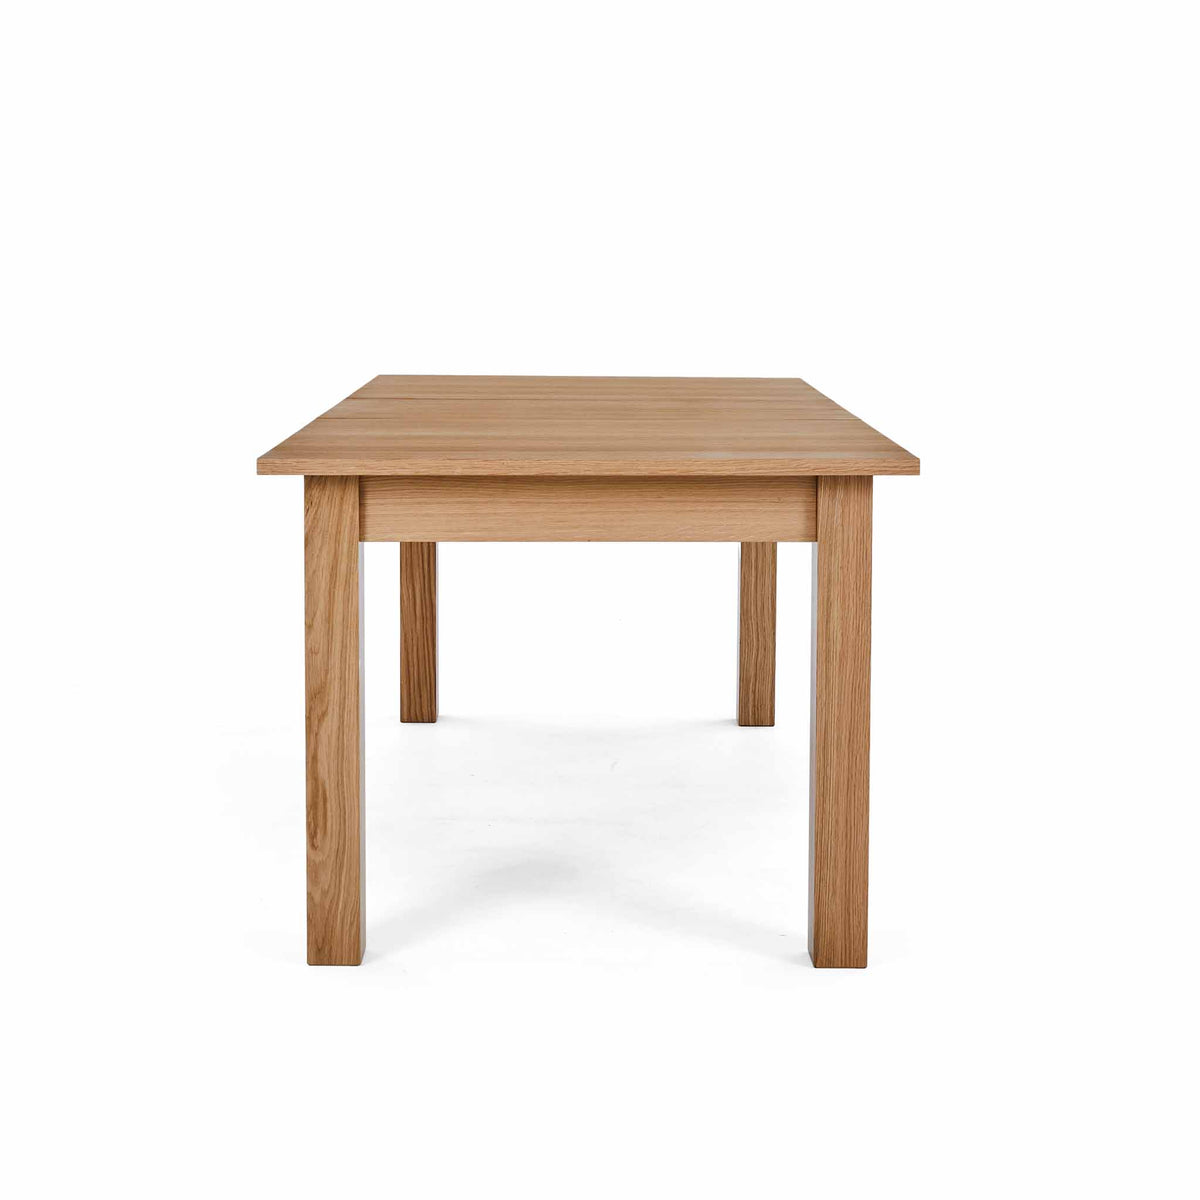 End view of the Falmouth Oak Large Extending Table by Roseland Furniture